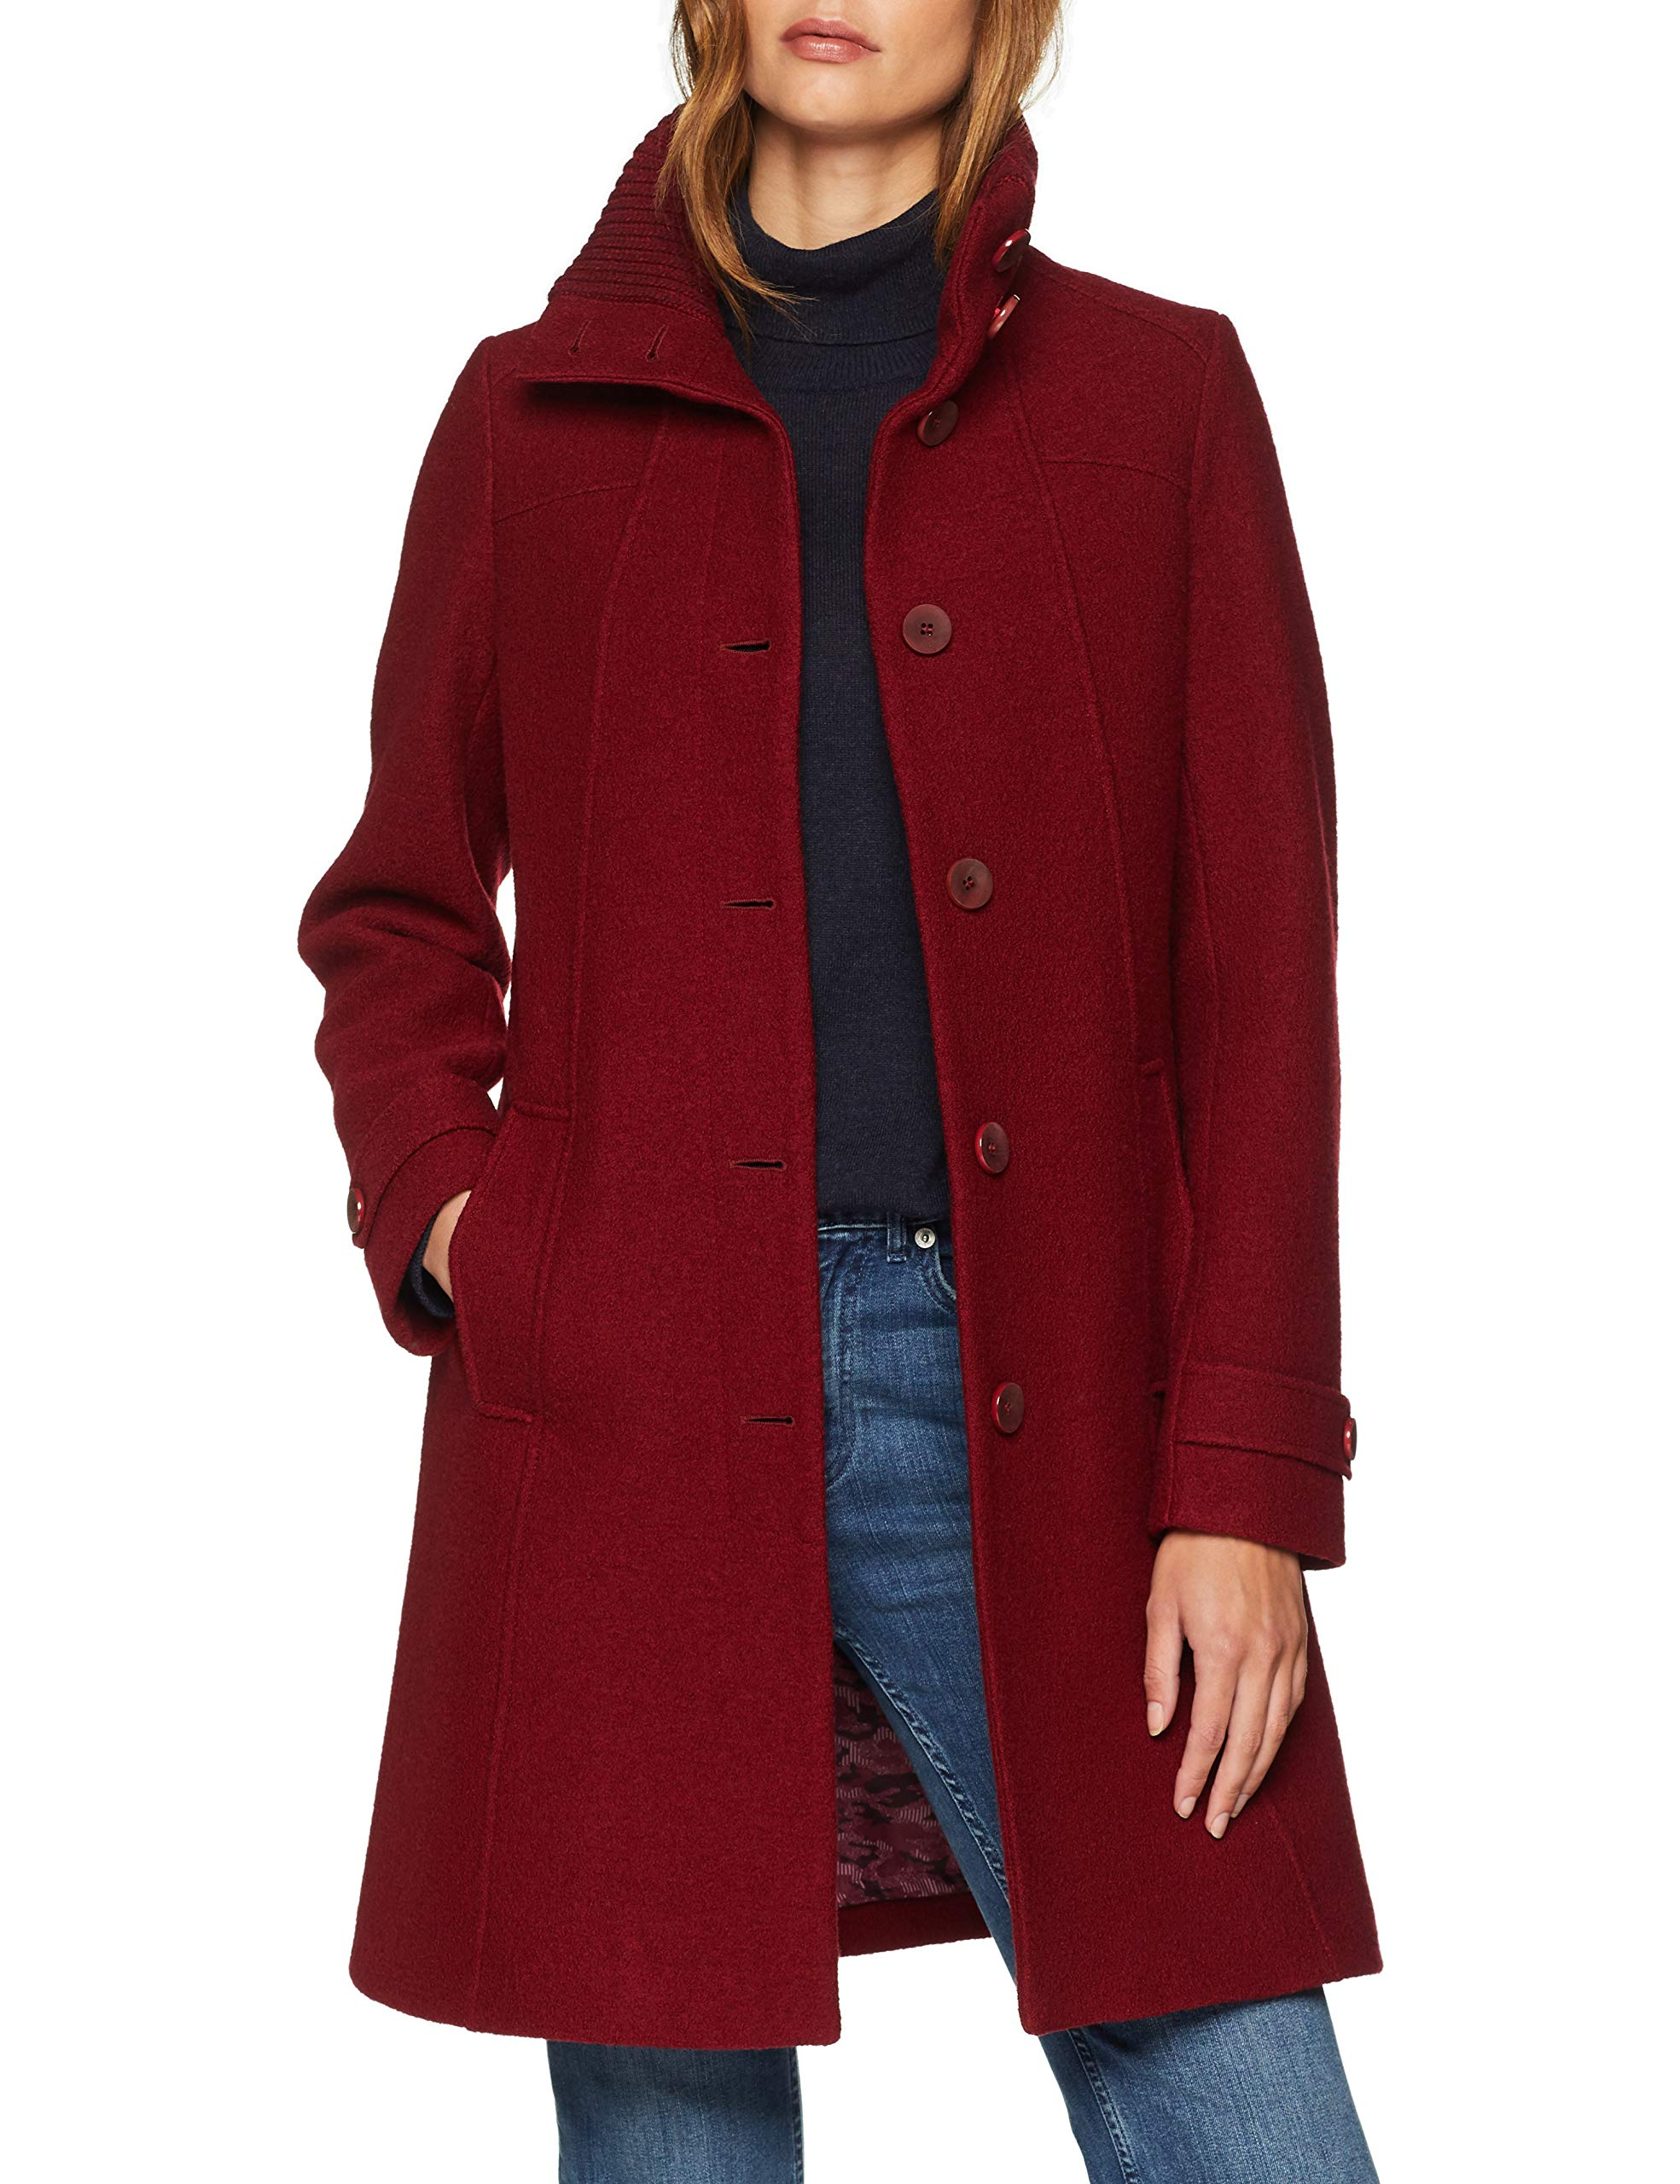 24088 Manteau Femme 67Taille48 Rougerot Bugatti262200 08nOkwP